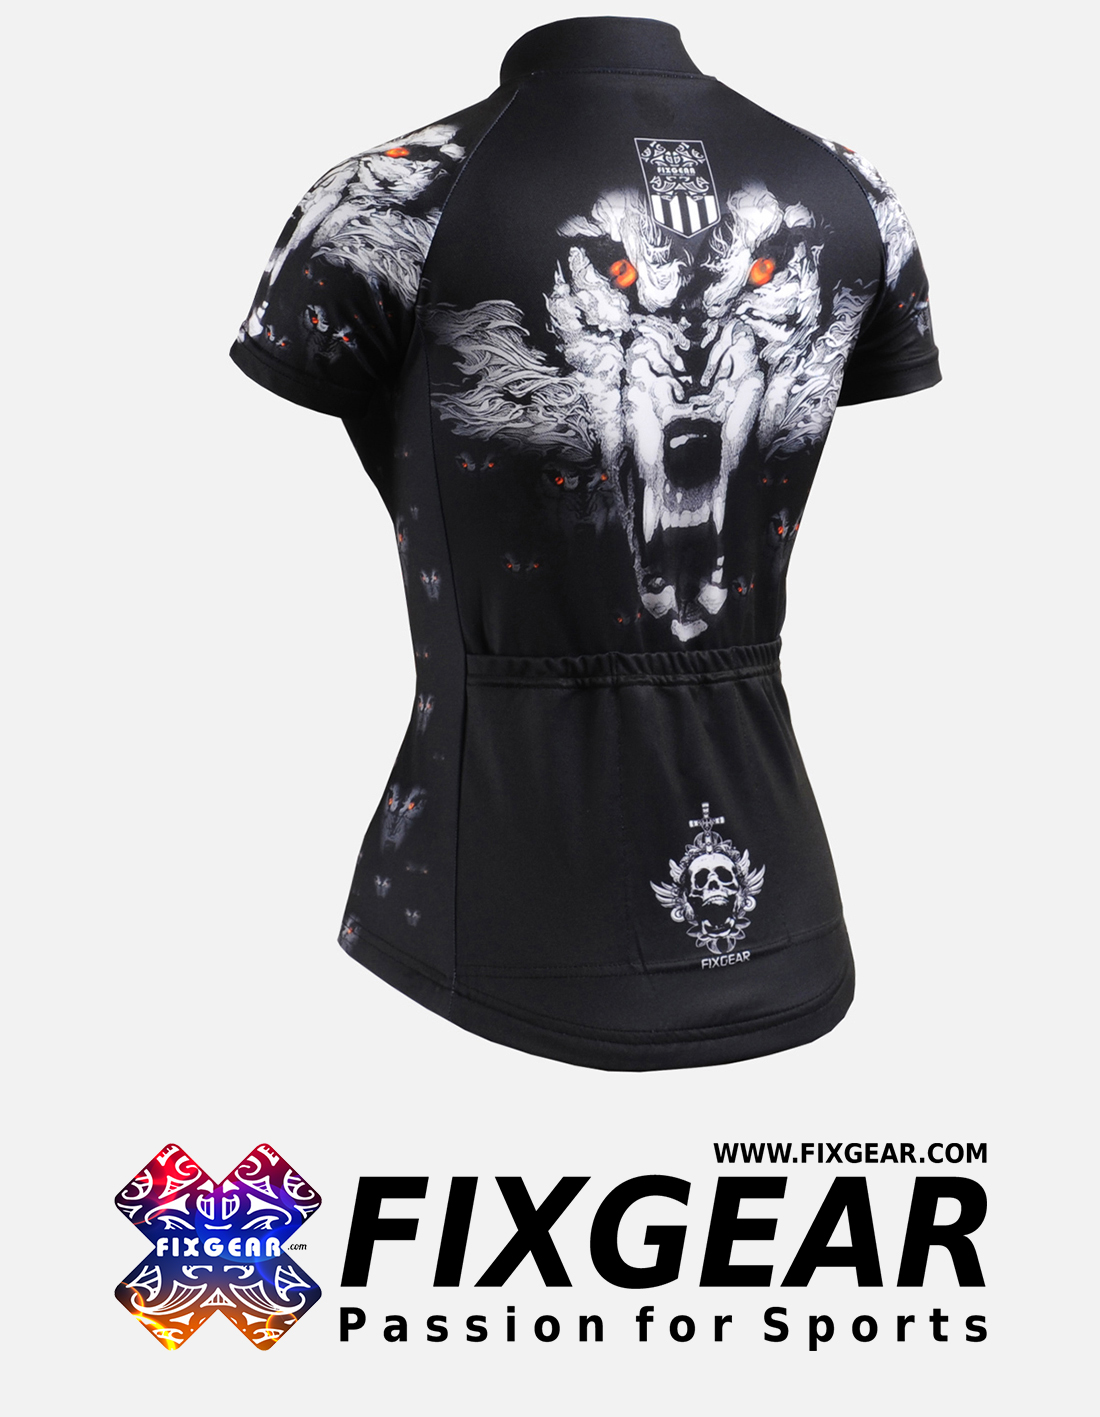 FIXGEAR CS-W1802 Women's Short Sleeve Jersey